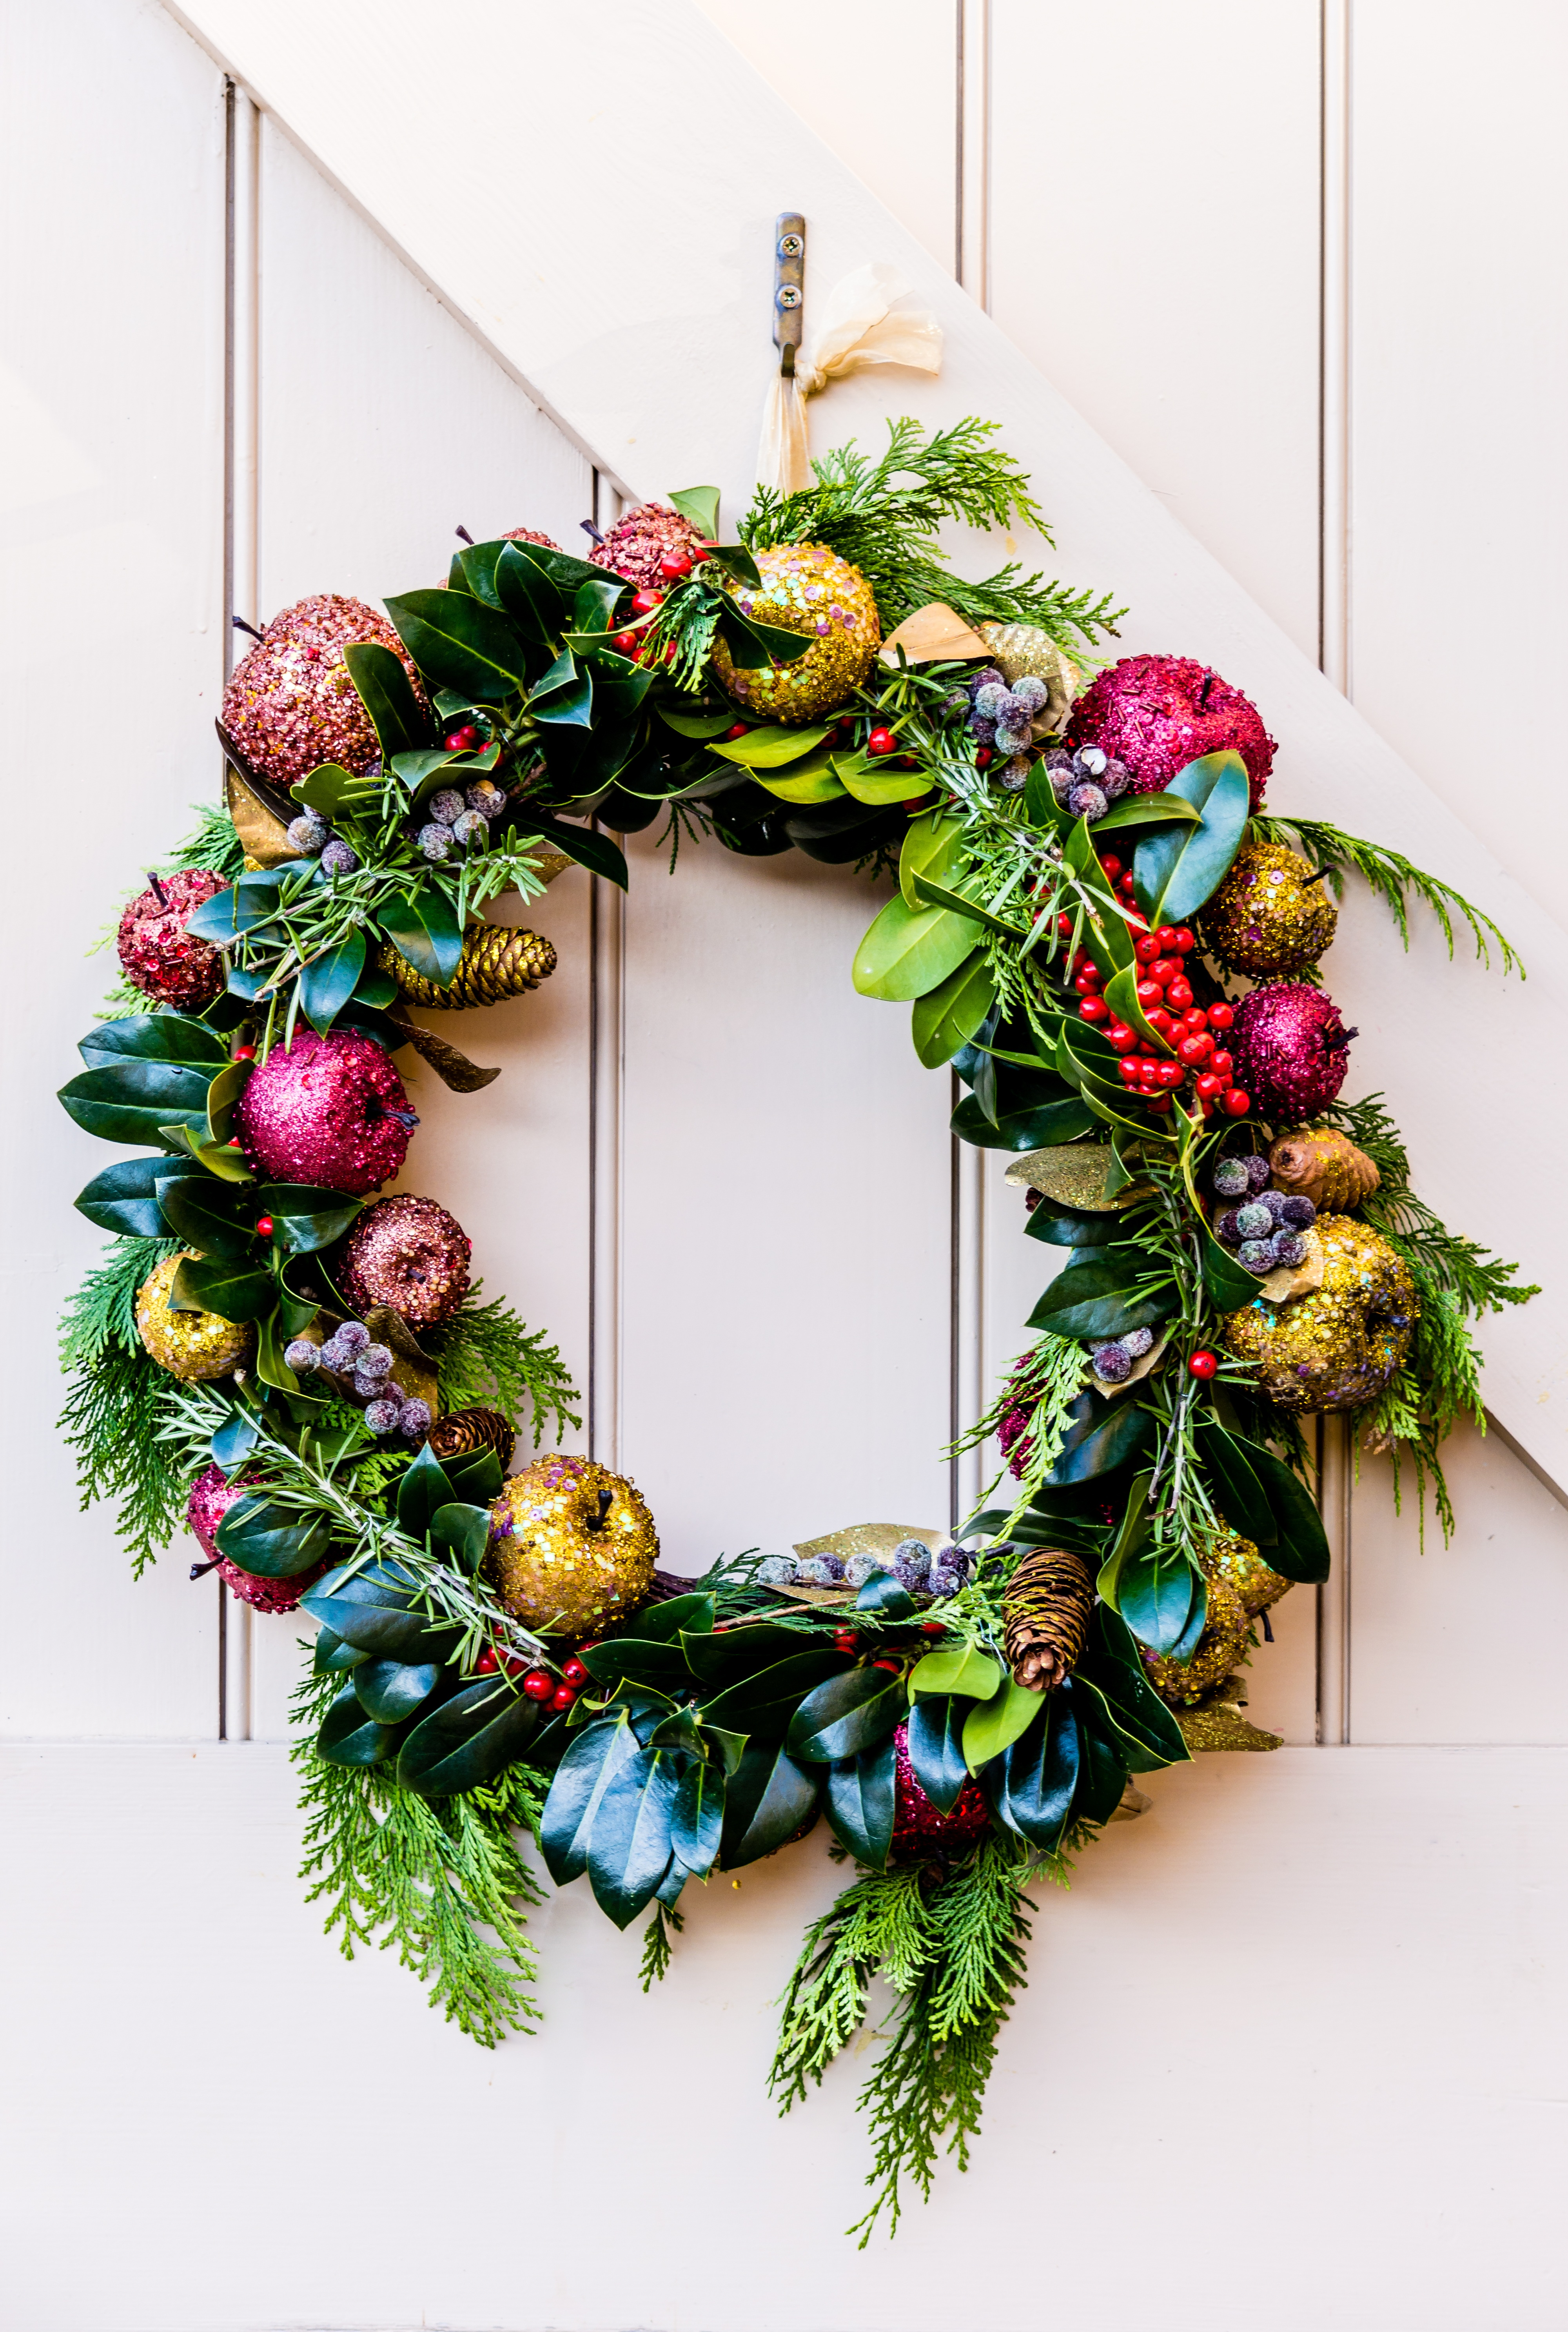 Coping through the holidays tip 1 party time art therapy for women who experience - Admirable christmas wreath decorating ideas to welcome the december ...